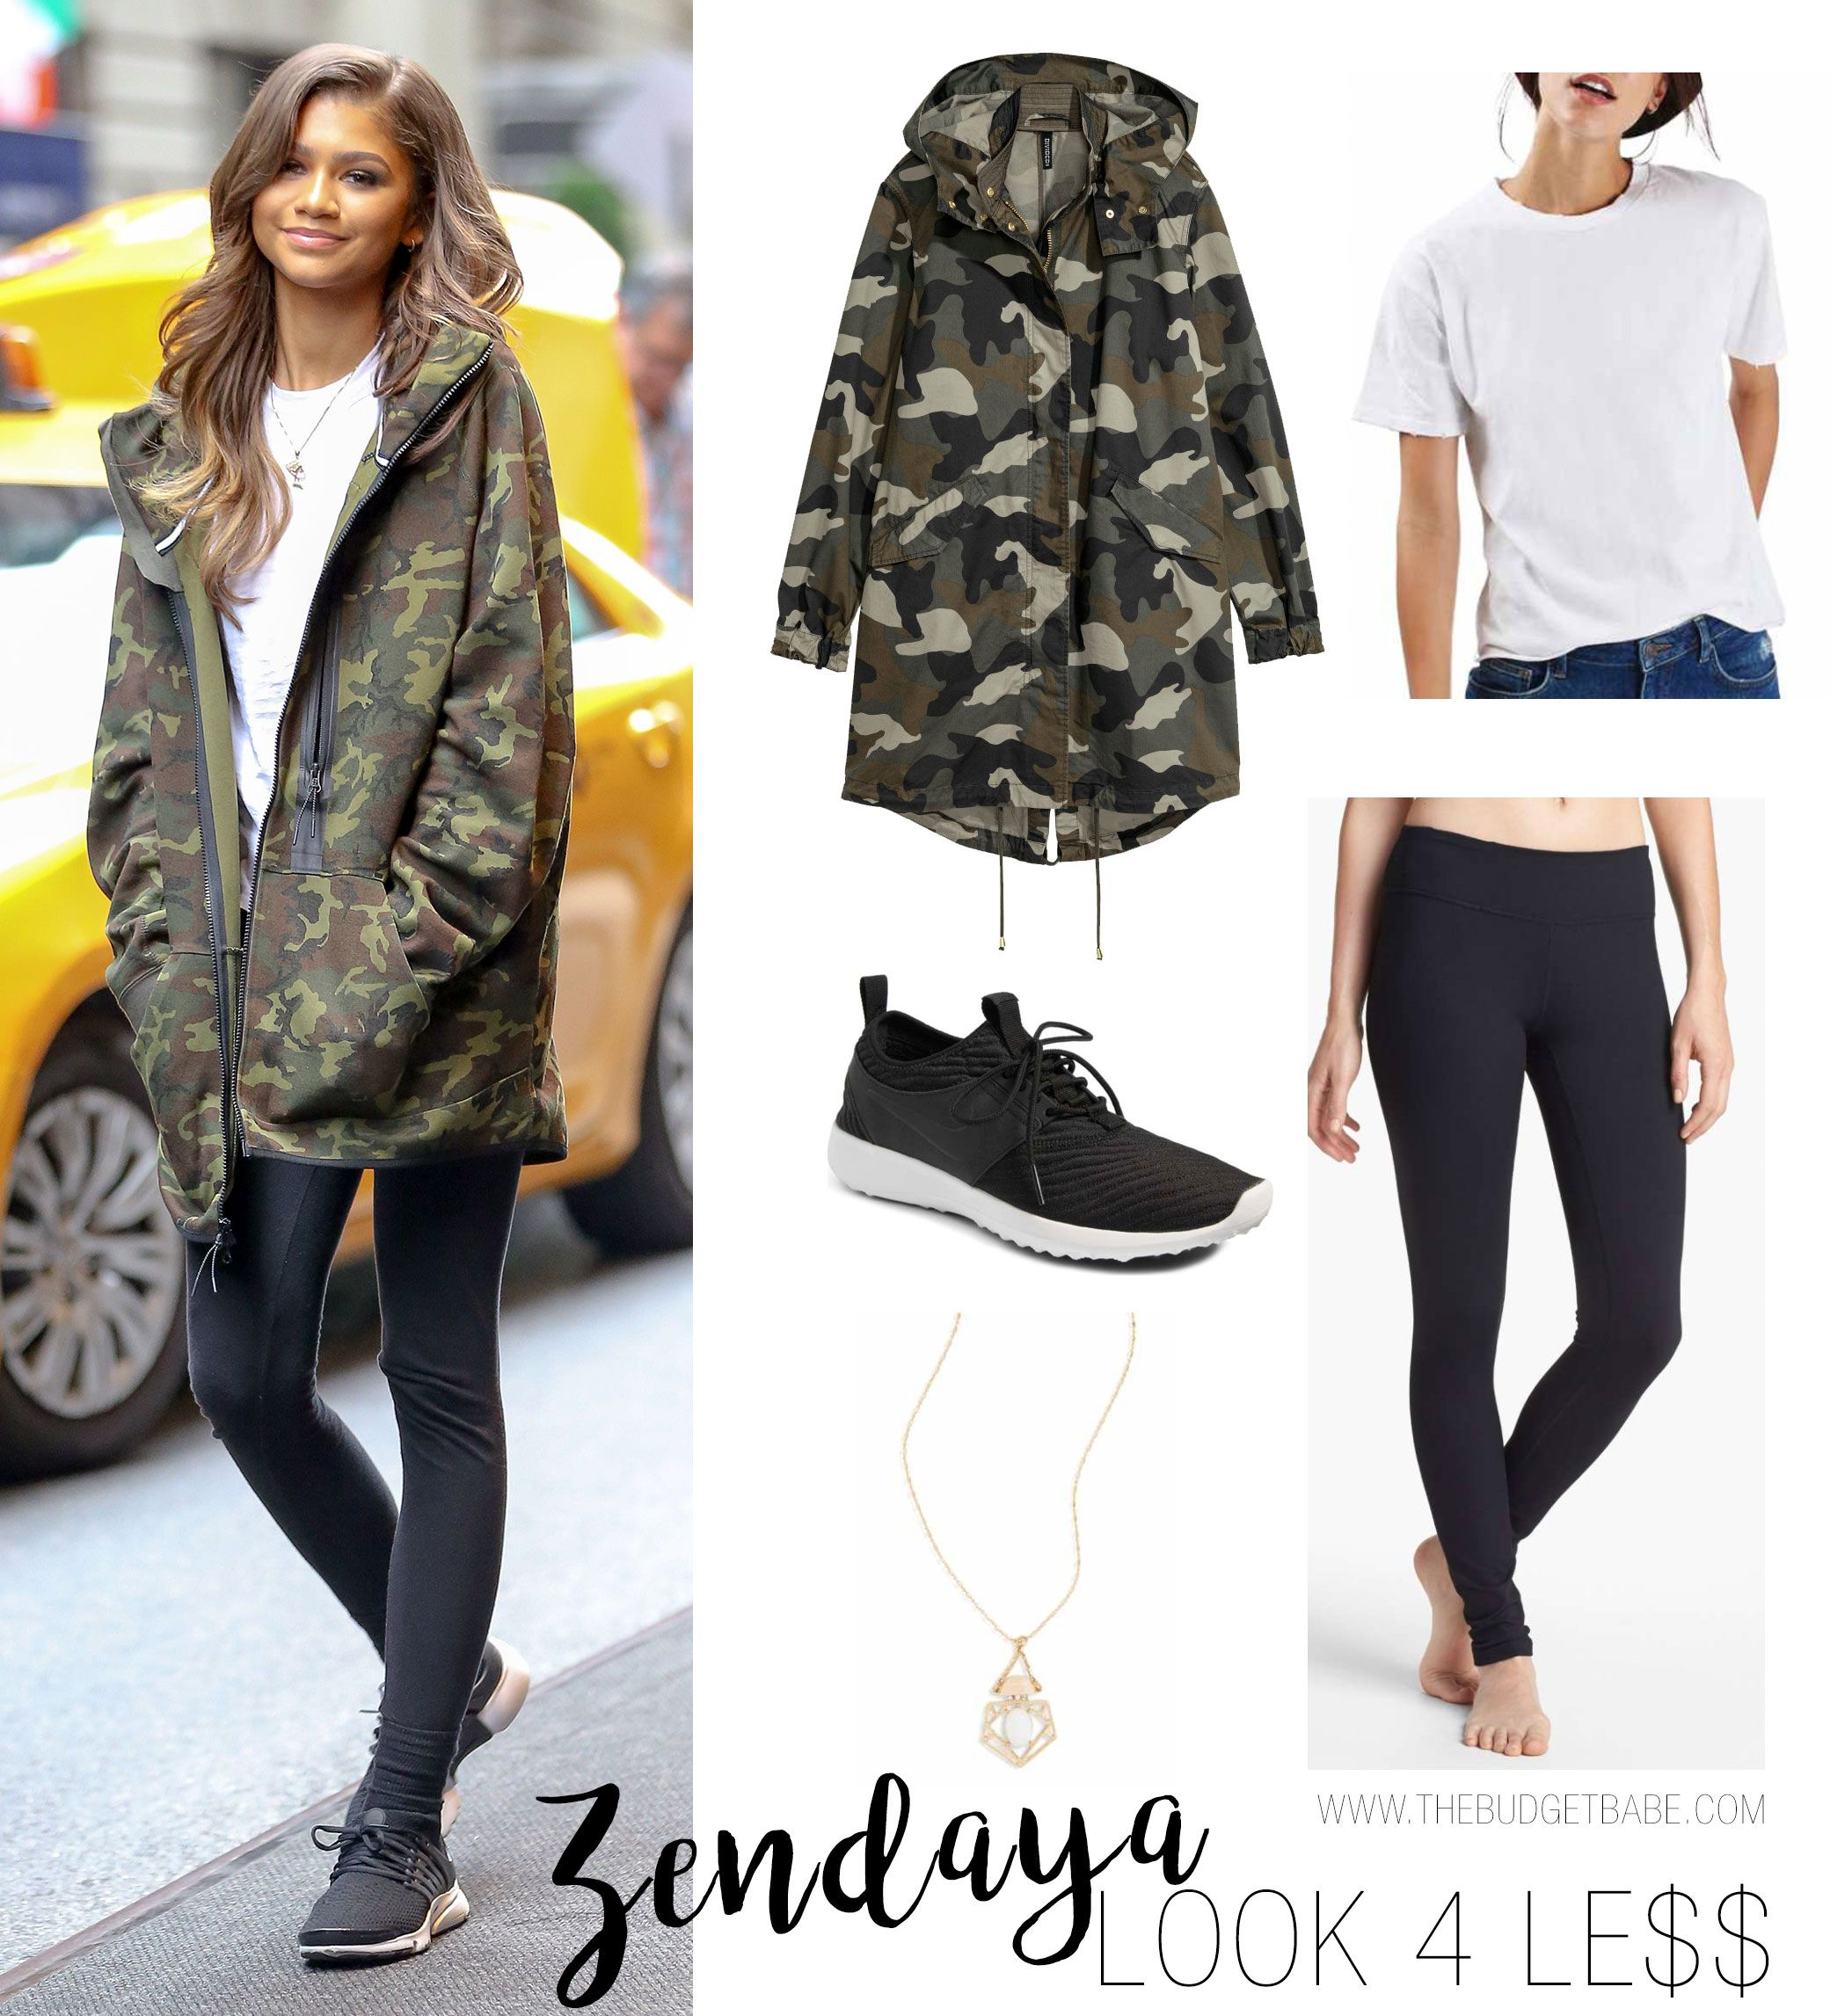 869d23fd32d2 Zendaya camo jacket and sneakers casual fall outfit idea Celebrity Look